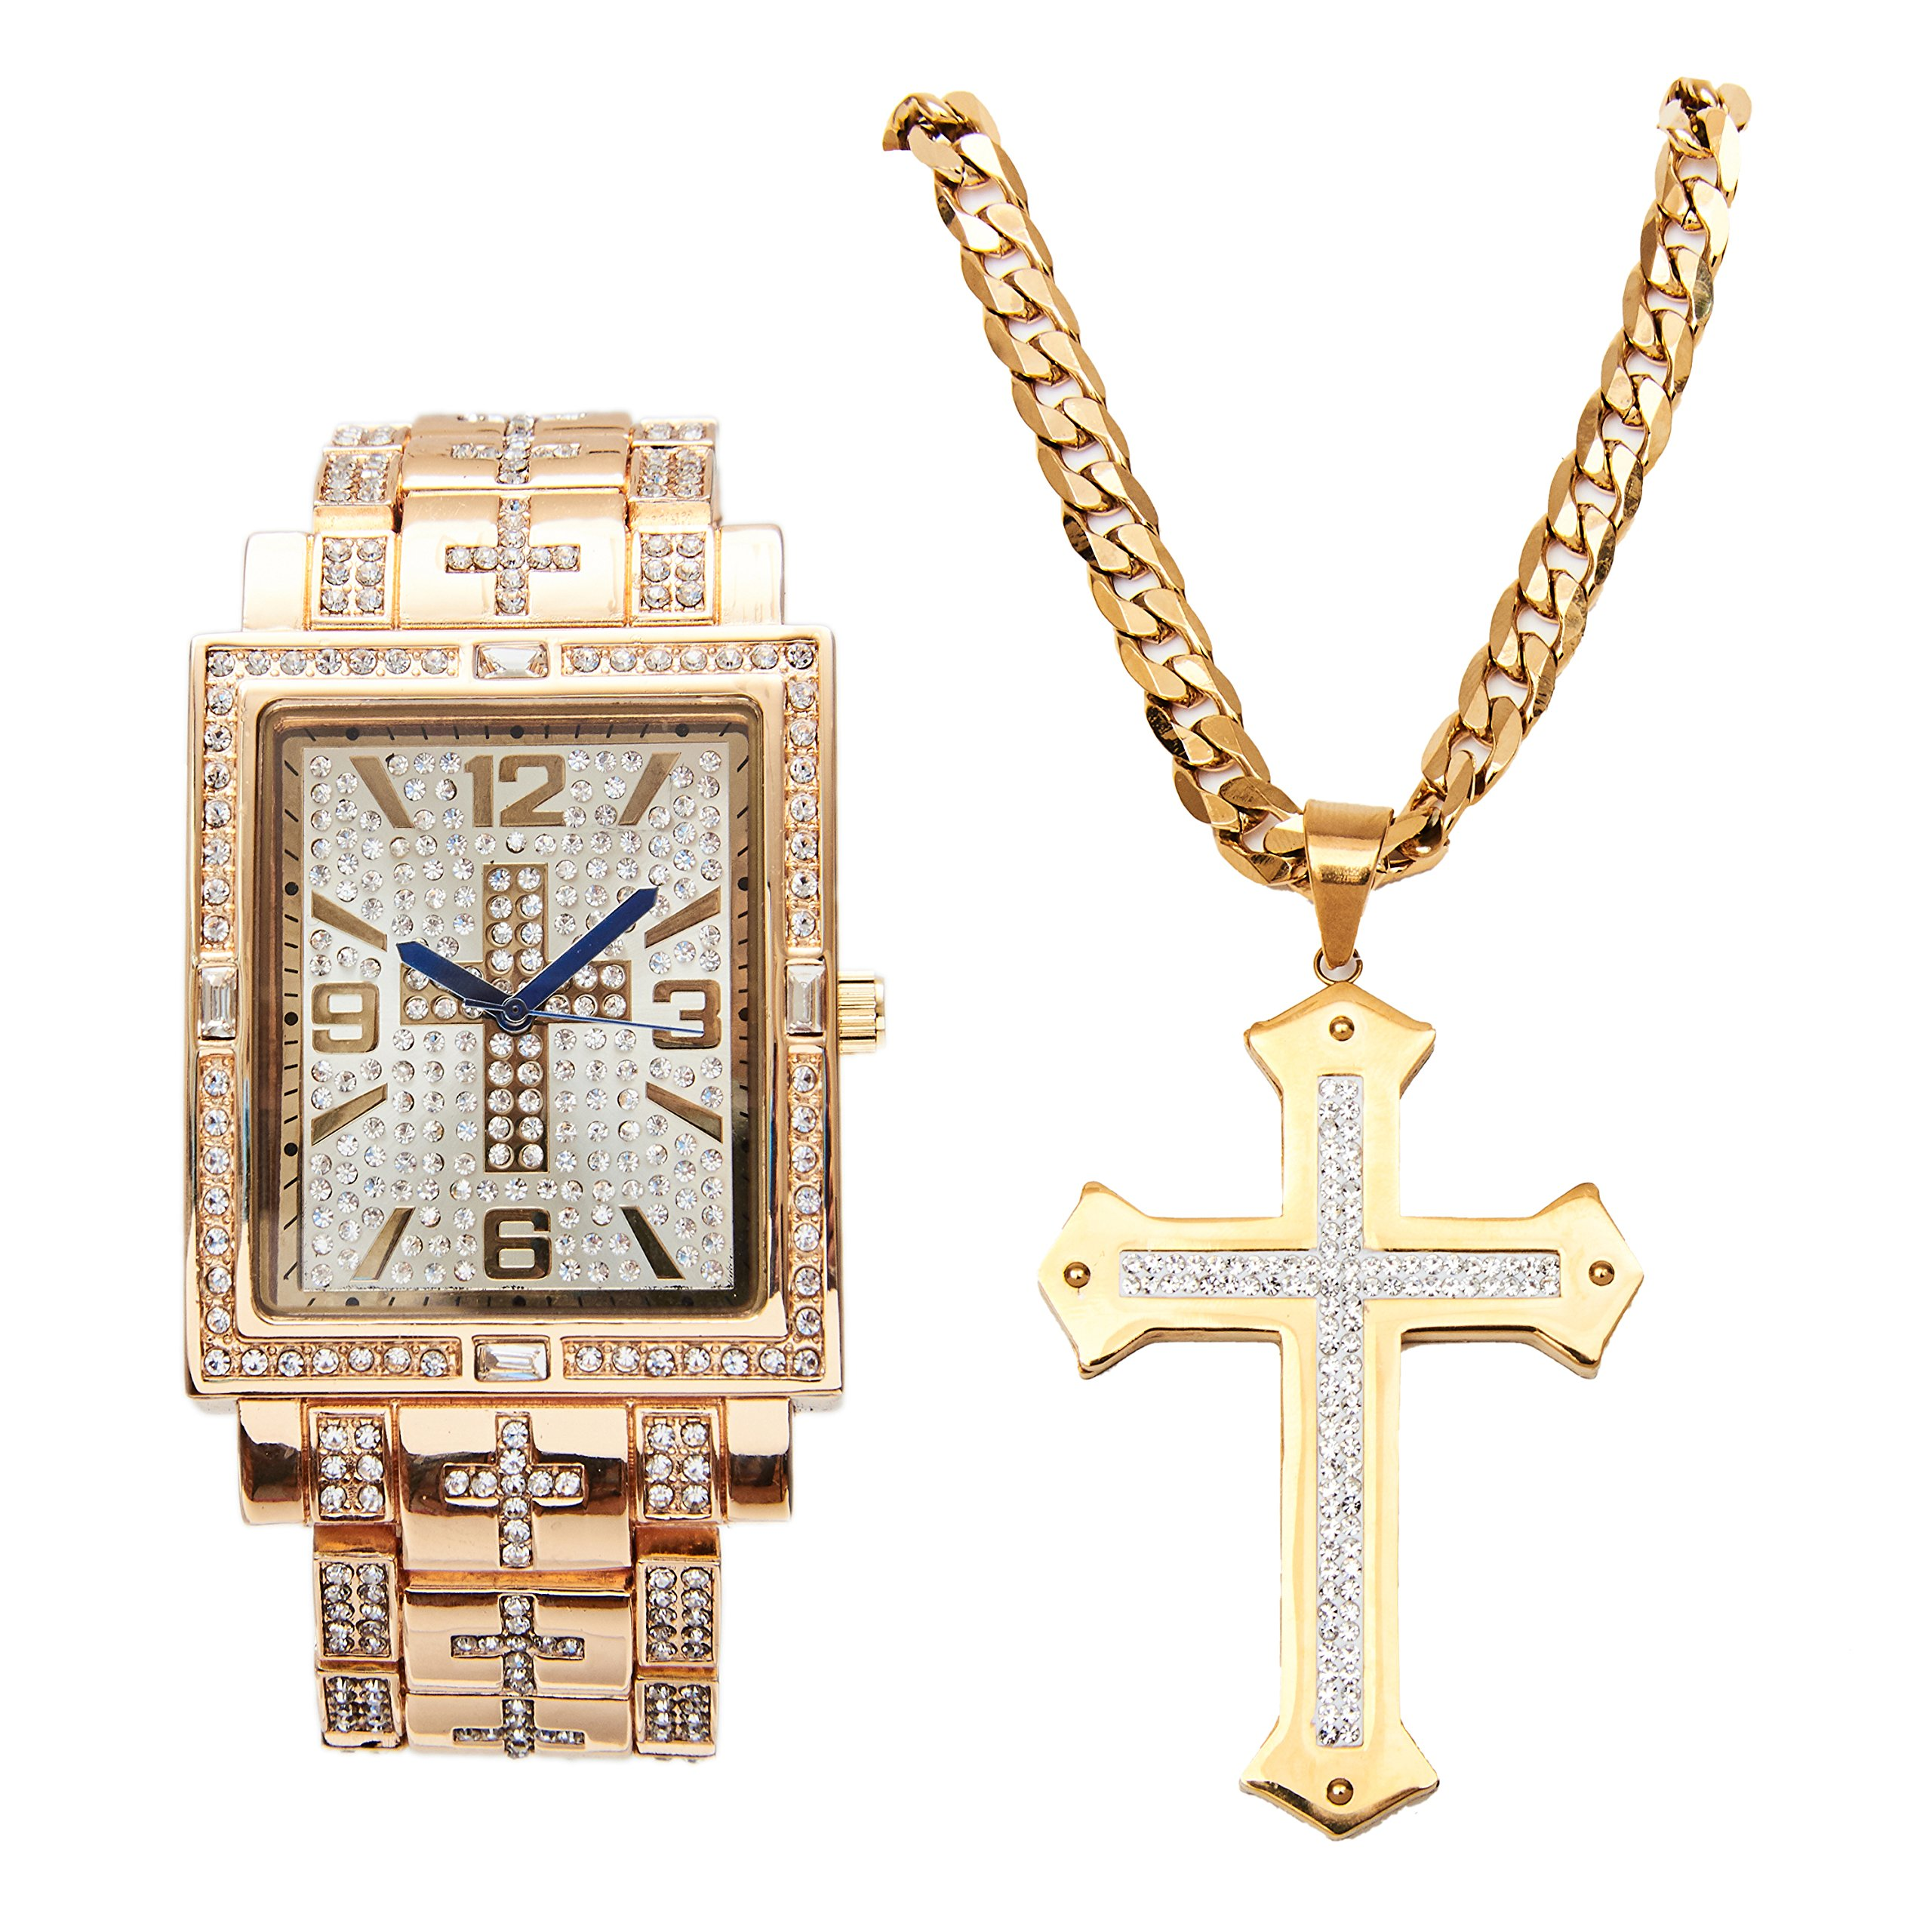 You Got Jesus with this Hip Hop Iced Out Cross Decor Rectangular Gold Bling Watch with Baquettes on Trim and Matching Iced Out Stainless Steel Cross Necklace - L0487GLD-LR1030CTT Cross Gold Set